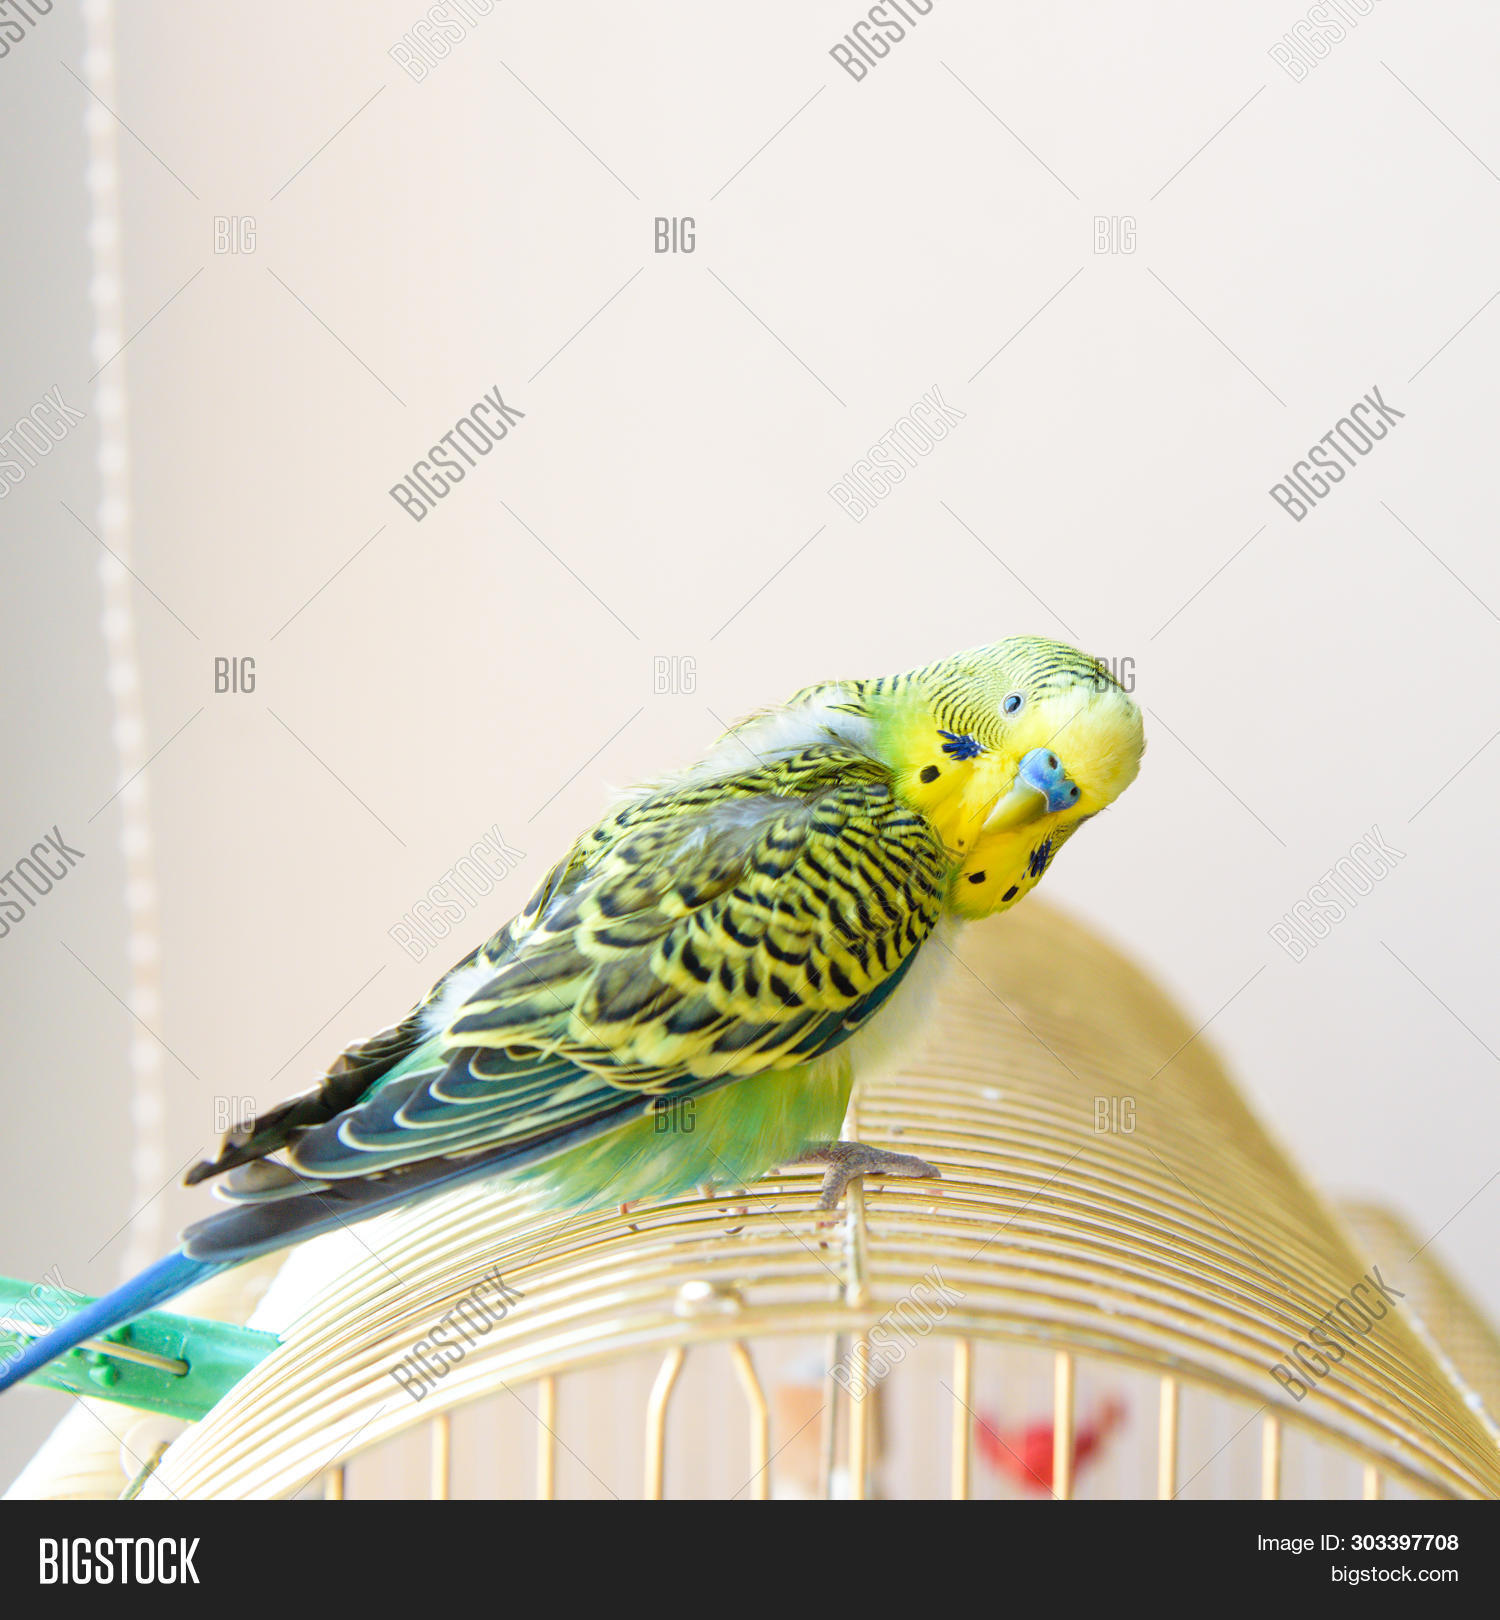 Domestic Budgie Parrot Image & Photo (Free Trial) | Bigstock